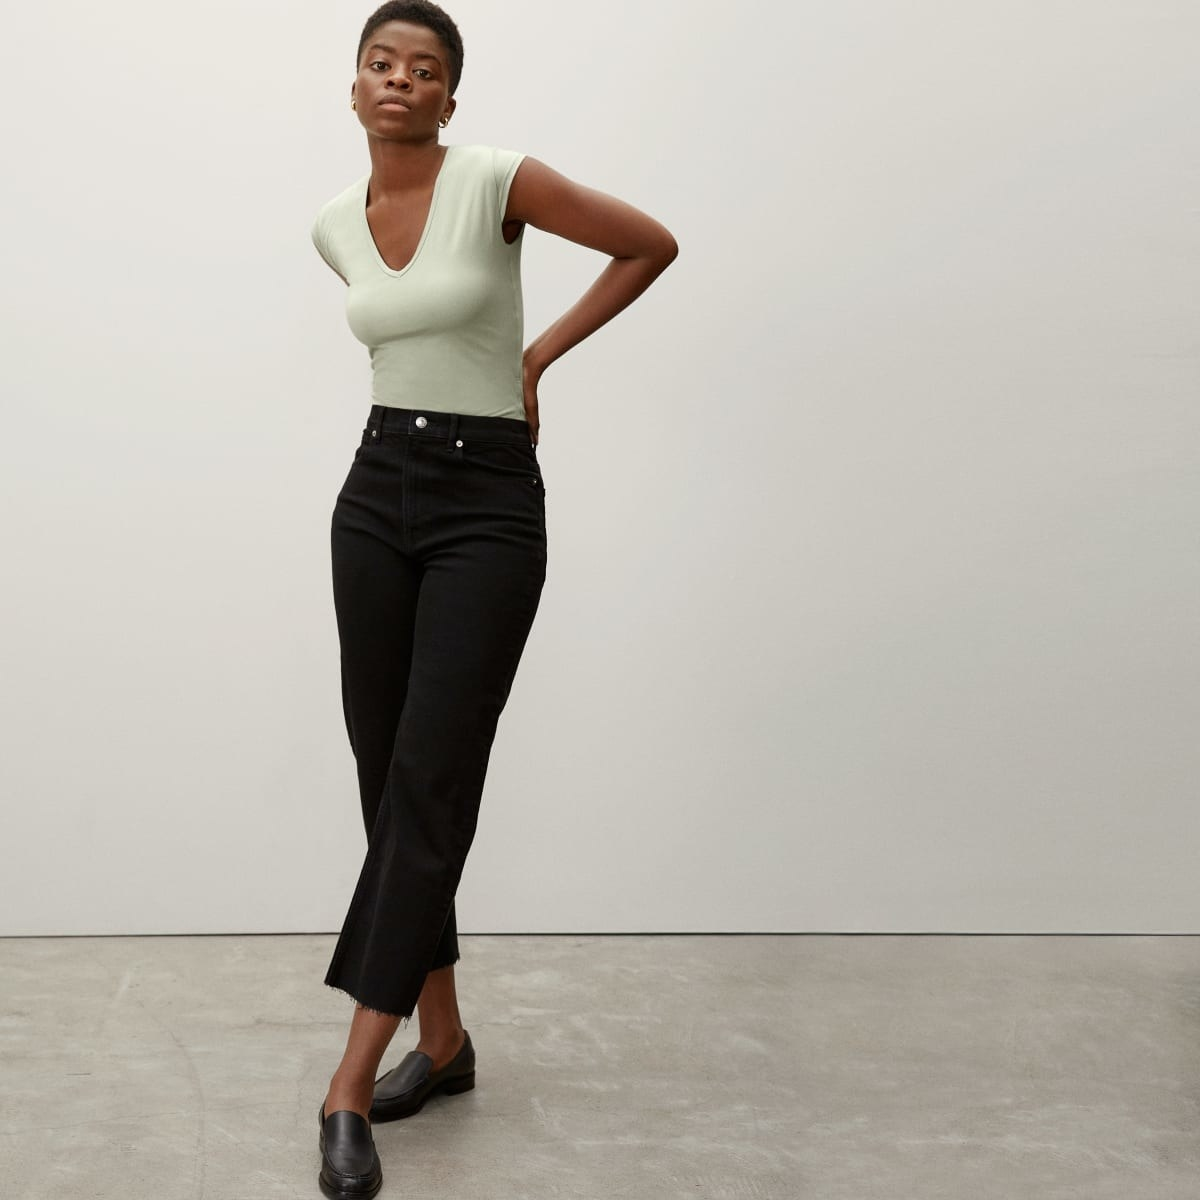 a modeal wearing the bodysuit in laurel green with black pants